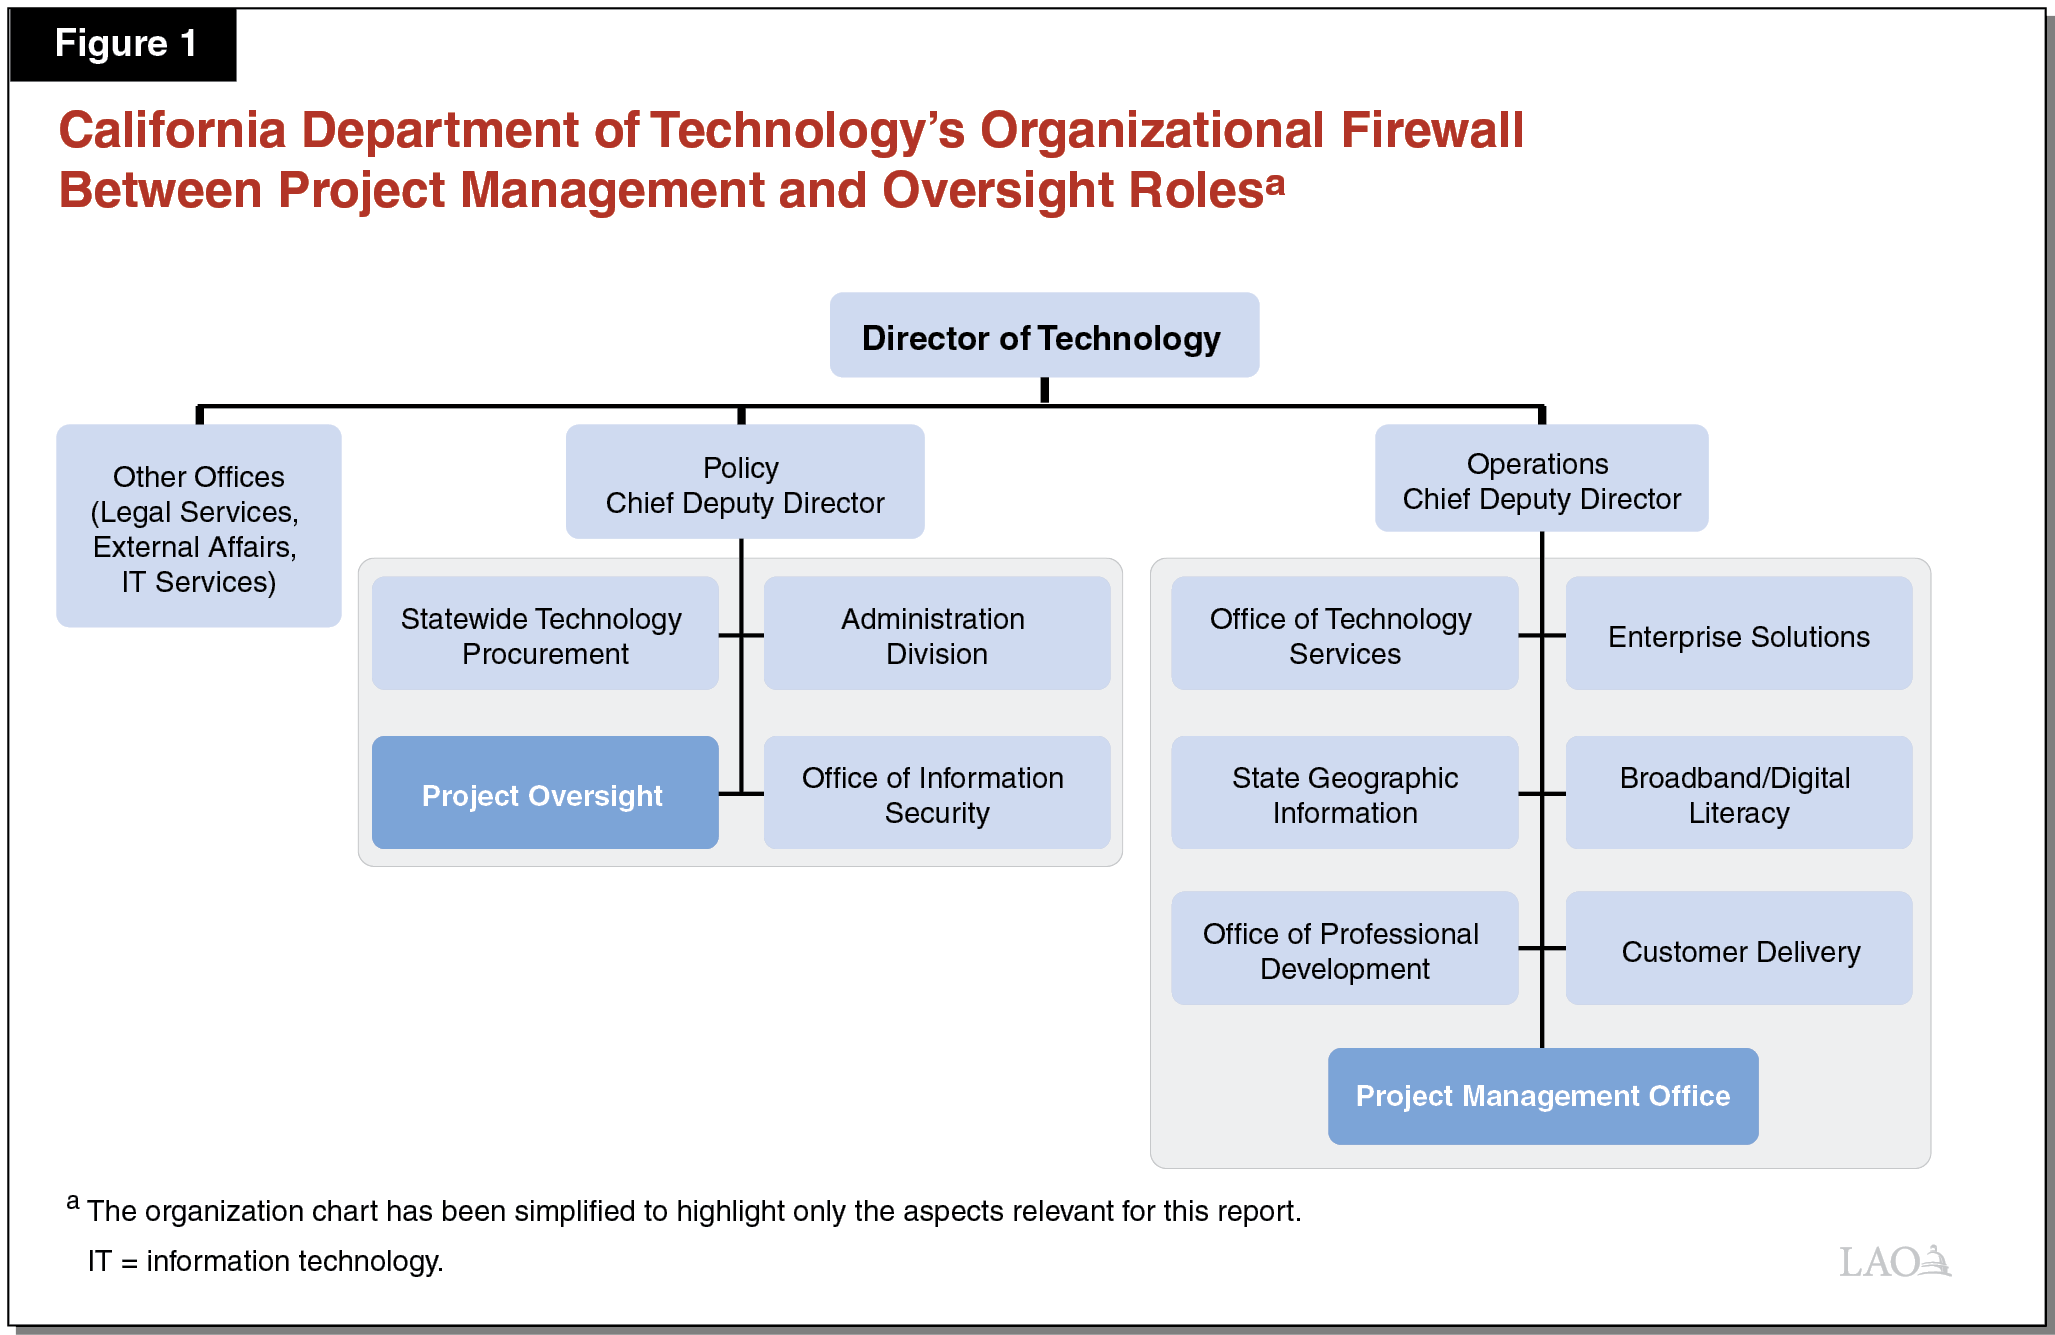 Figure 1 - California Department of Technology's Organizational Firewall Between Project Management and Oversight Roles